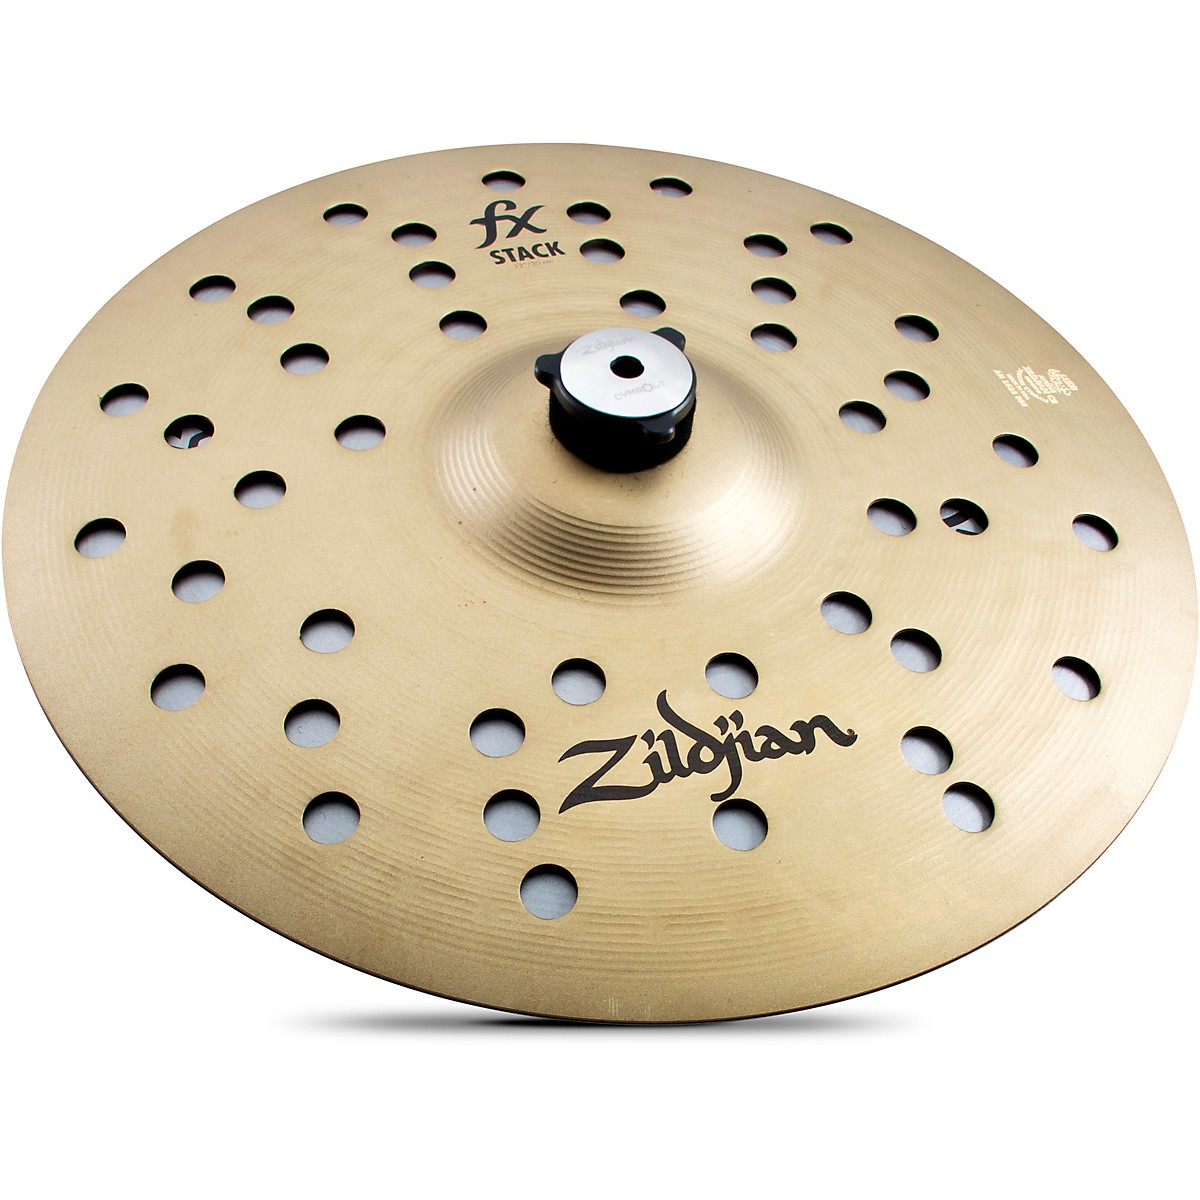 Zildjian FX Stack Cymbal Pair with Cymbolt Mount